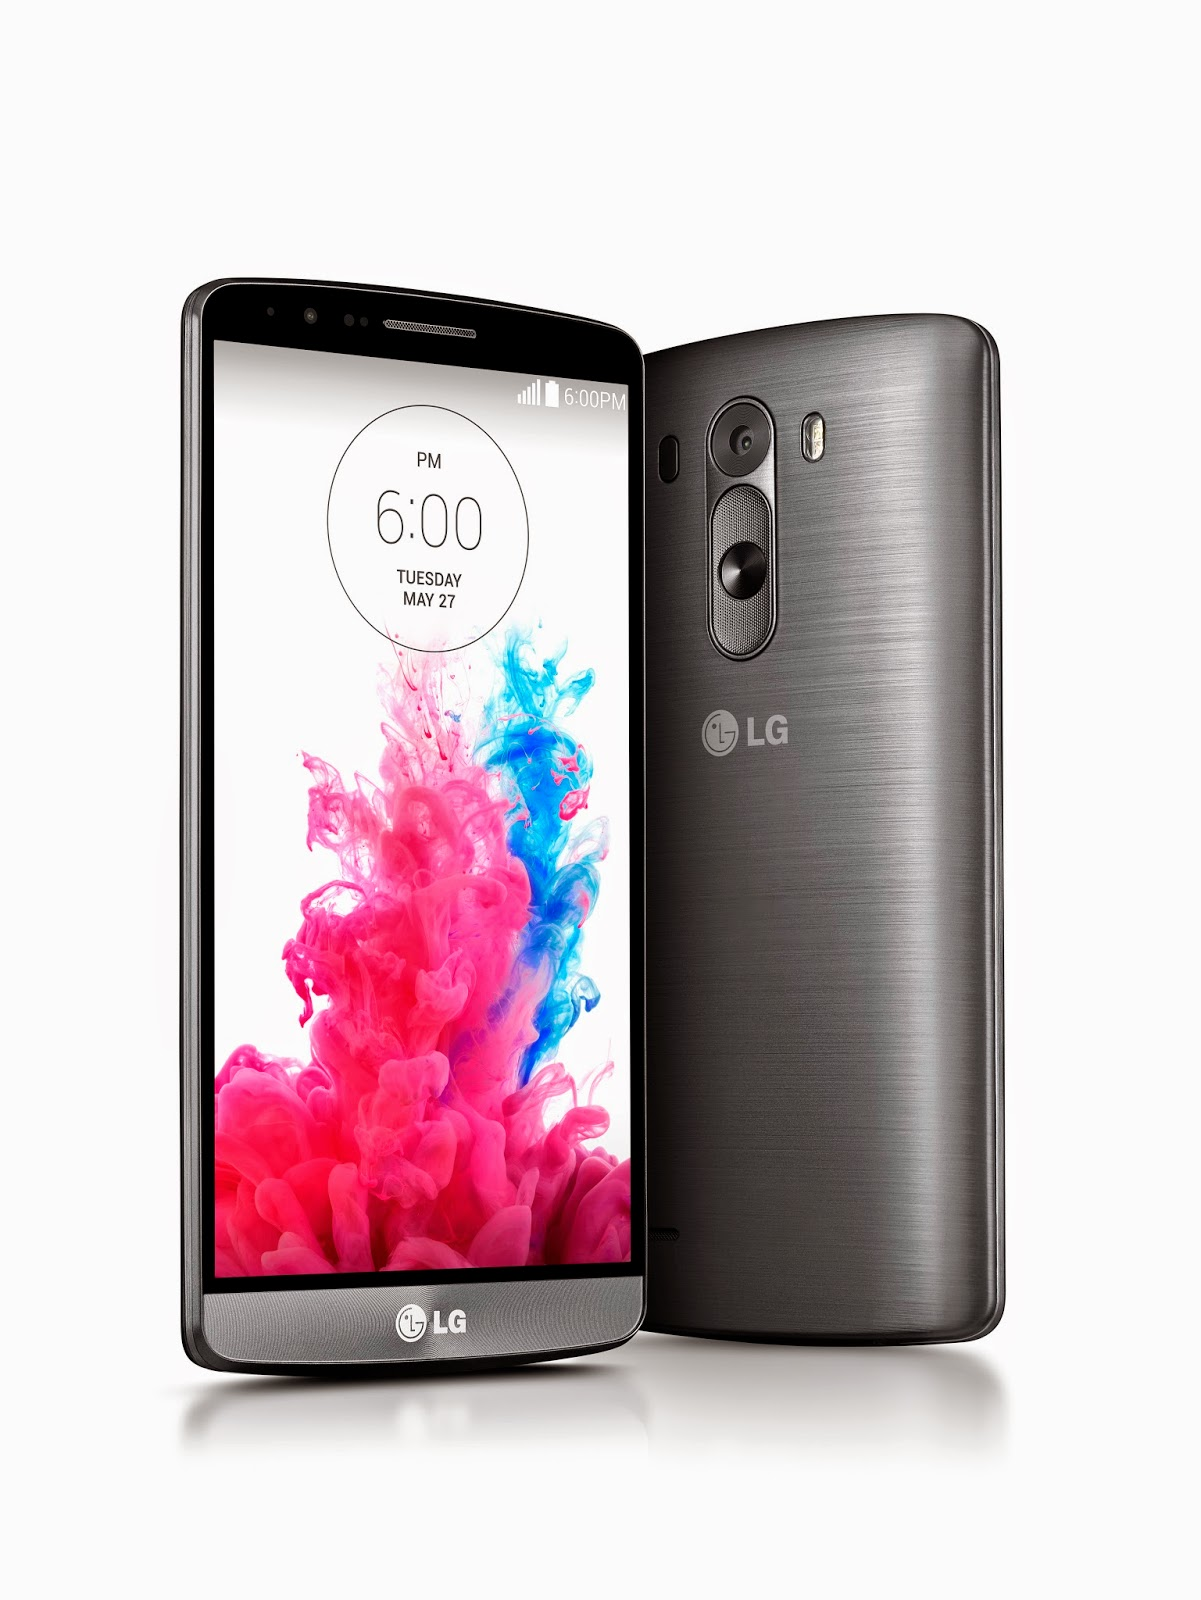 LG's Latest Smart Phone - the dynamic LG G3!